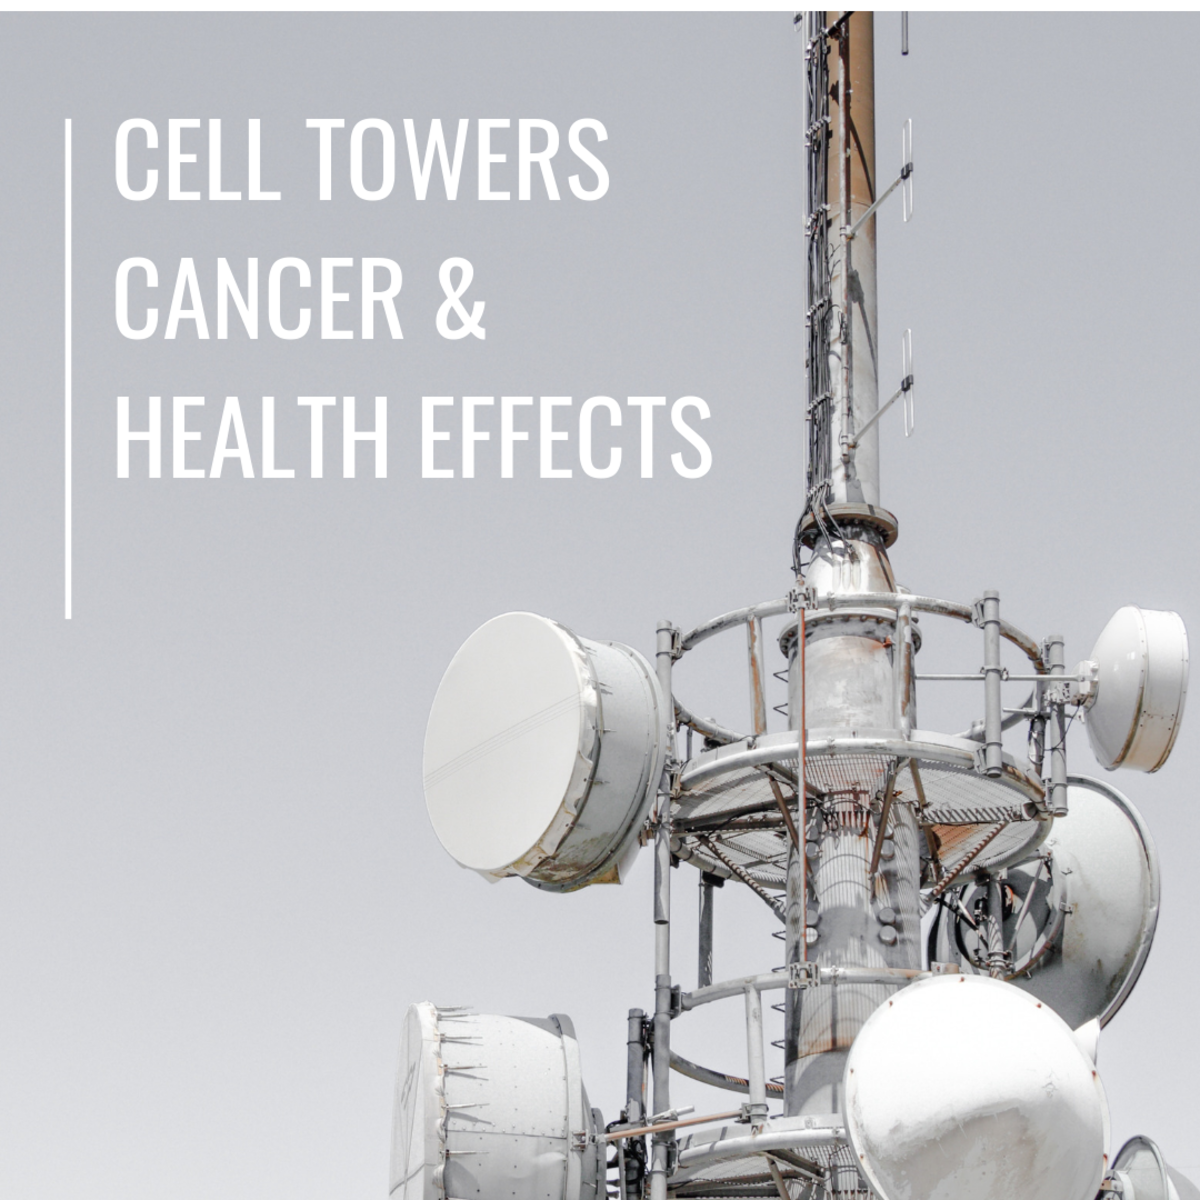 Do you live near a cell phone tower? Are you concerned about radiation?